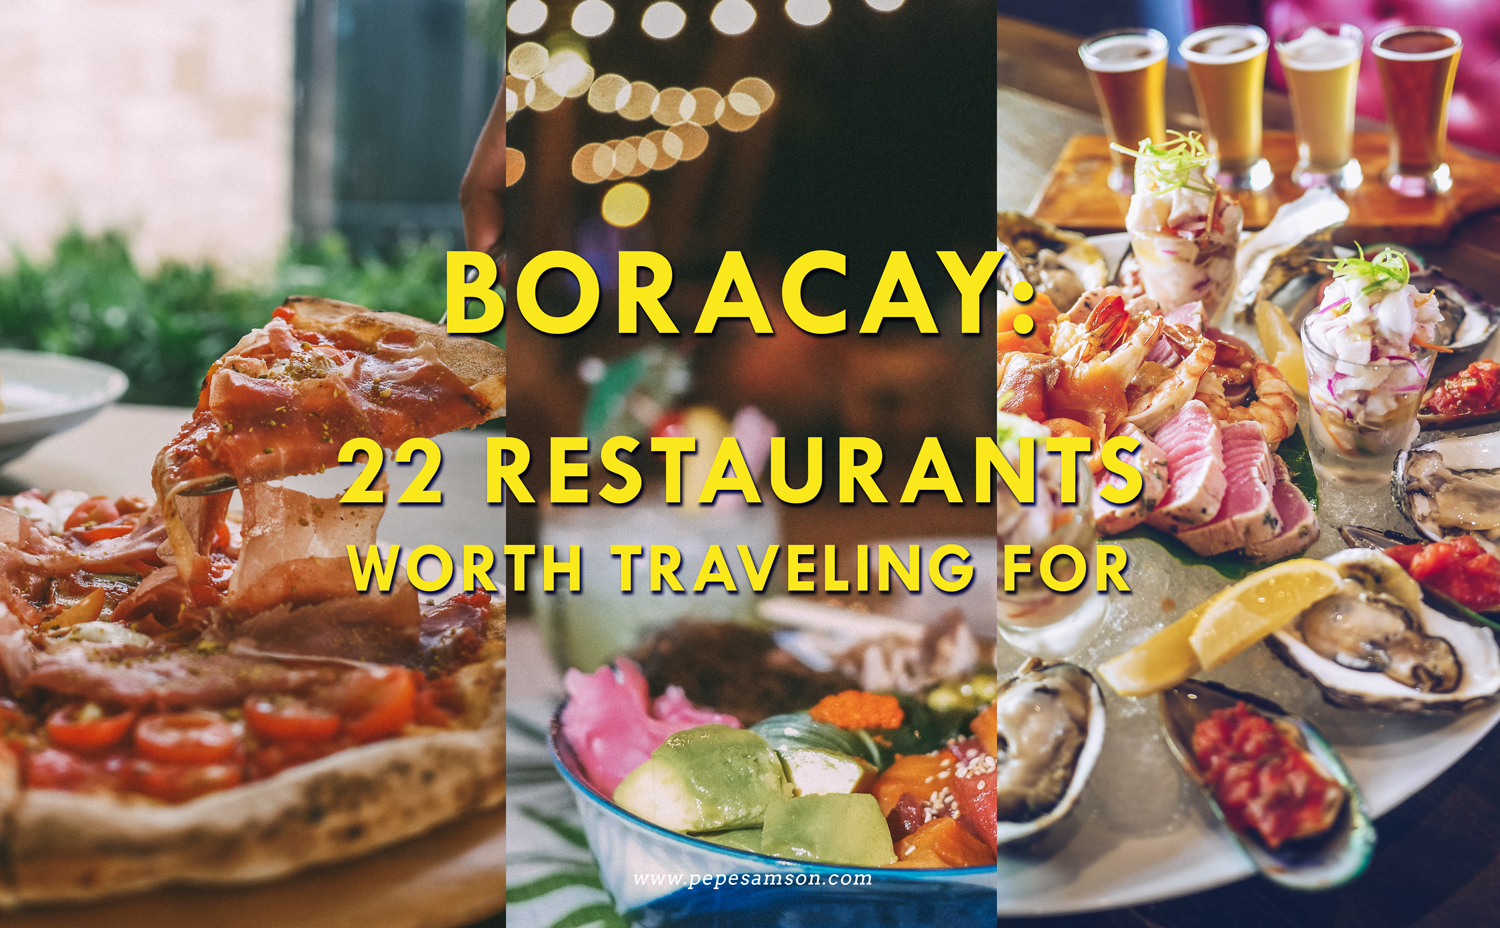 Boracay Food Trip: 22 Restaurants Worth Traveling For [UPDATED MARCH 2021]